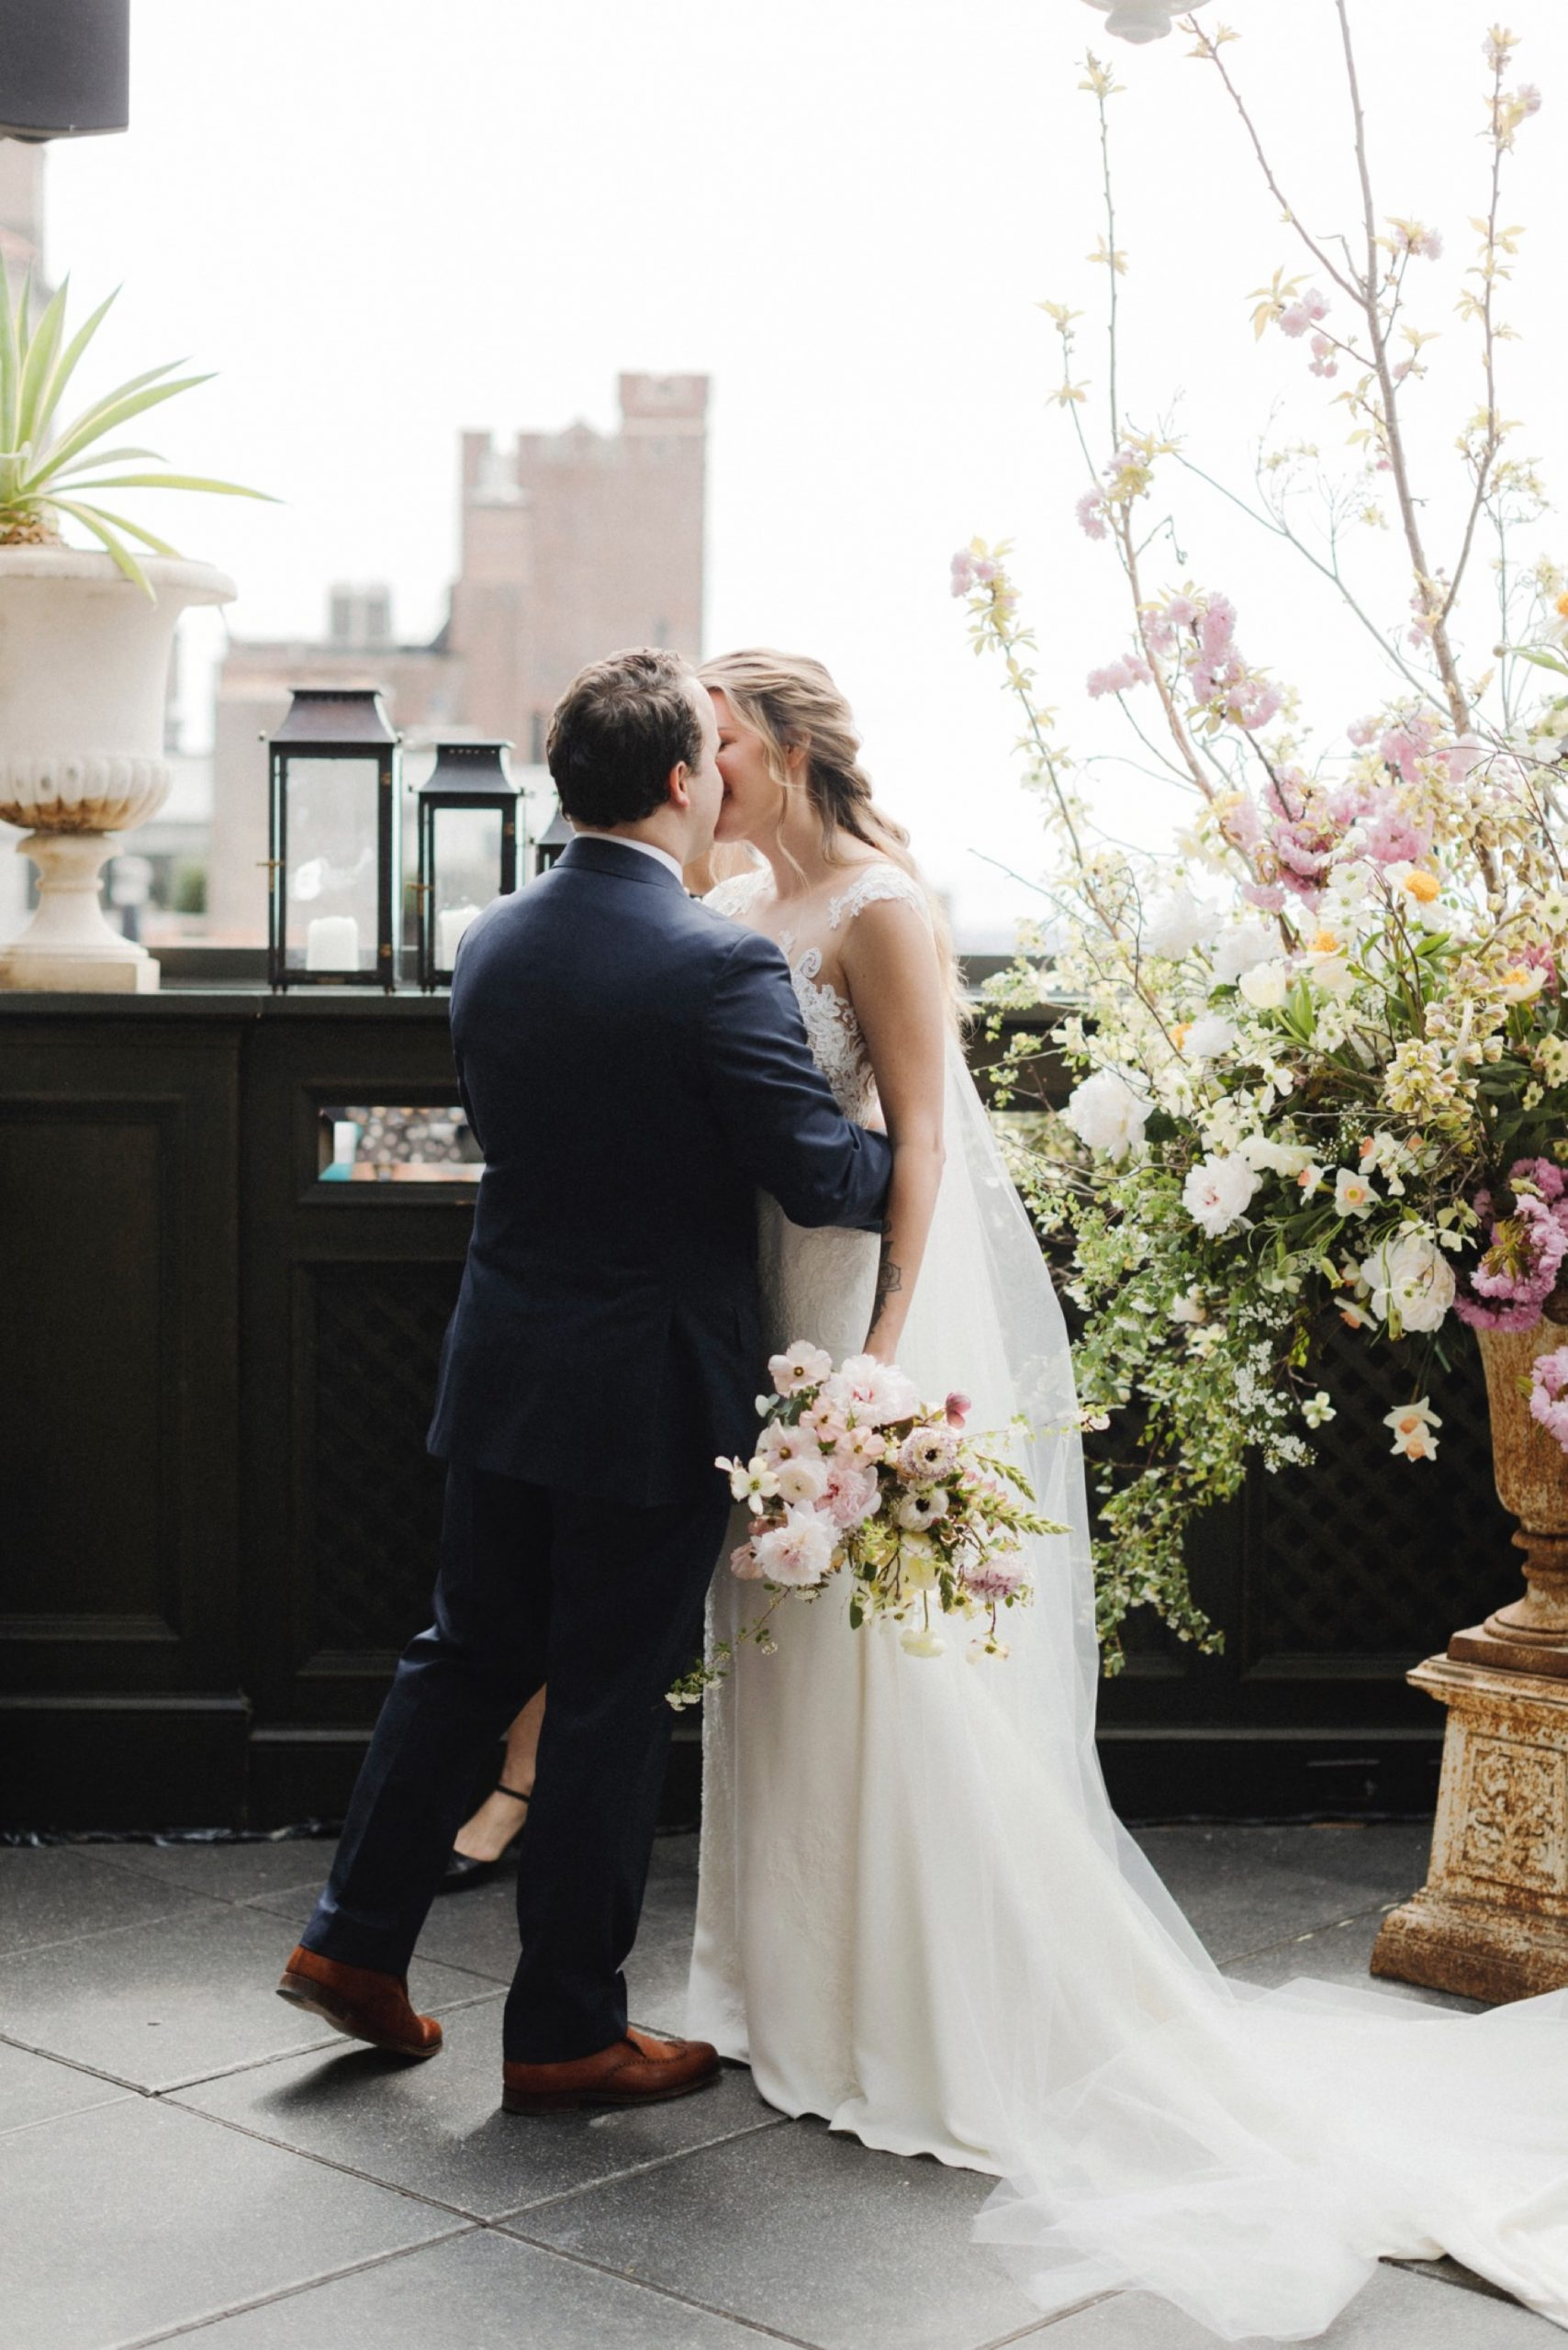 First kiss during ceremony at Gramercy Park Hotel Wedding